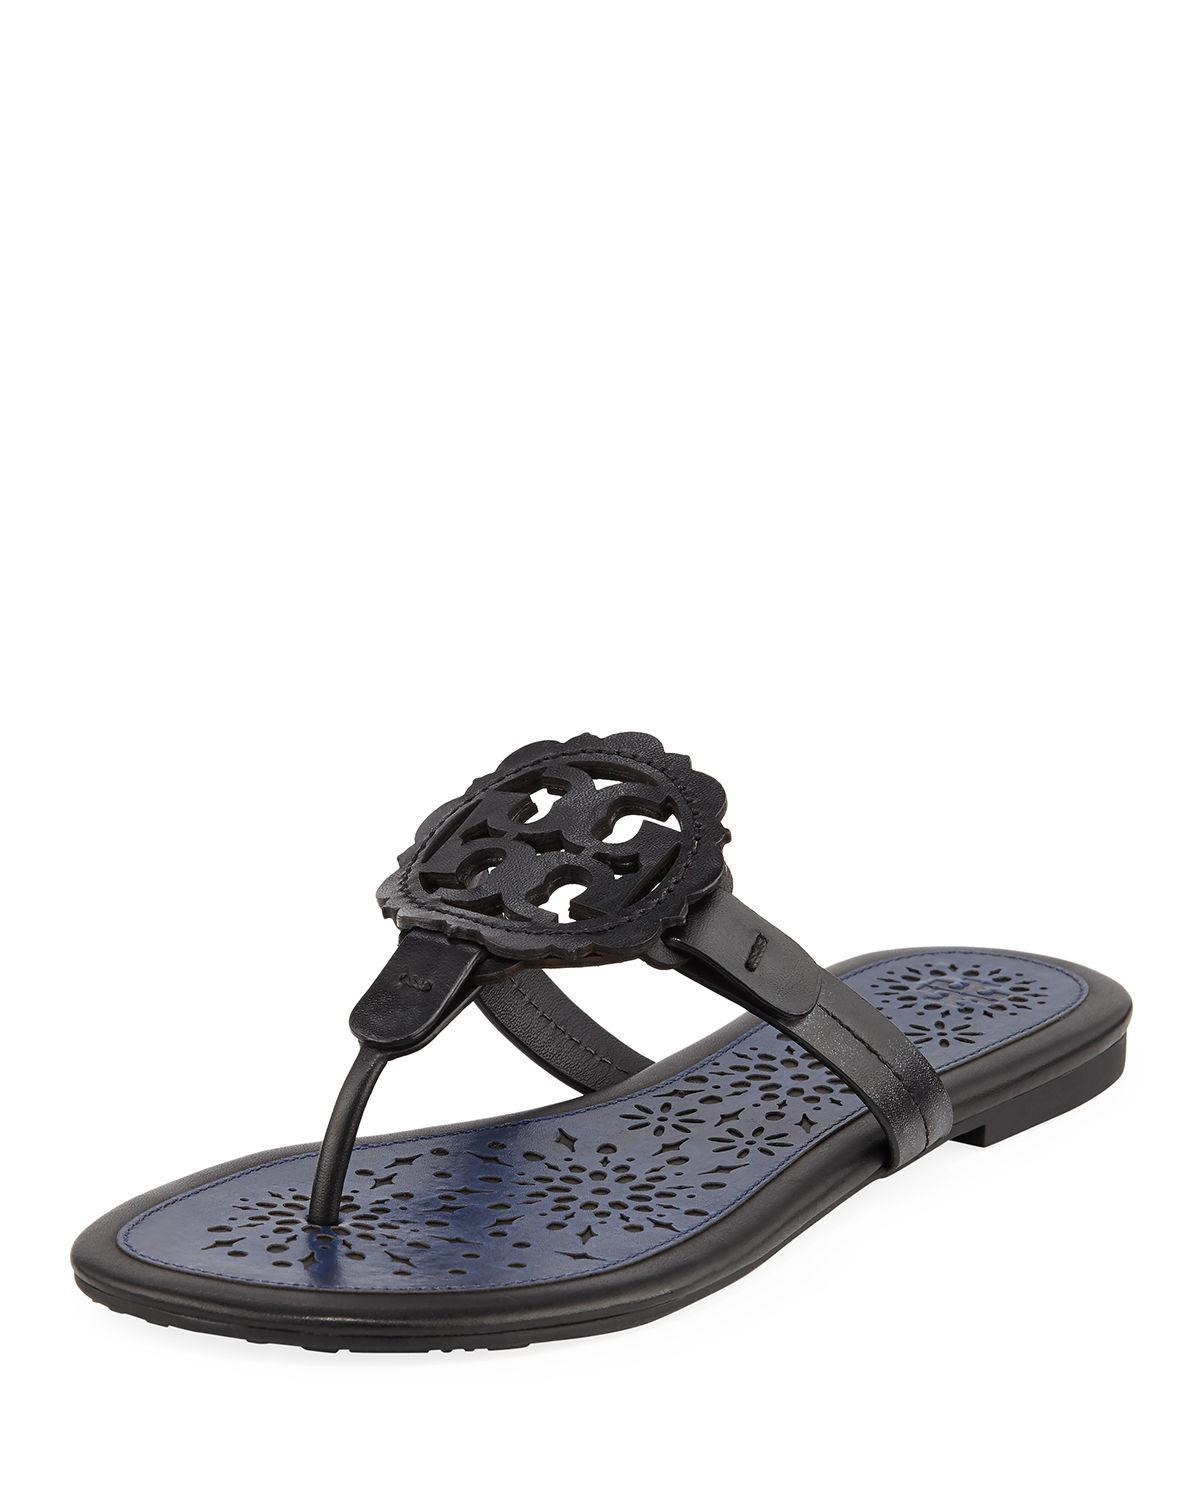 a59cc0768ea9 Lyst - Tory Burch Women s Miller Scallop Leather Thong Sandals in Blue